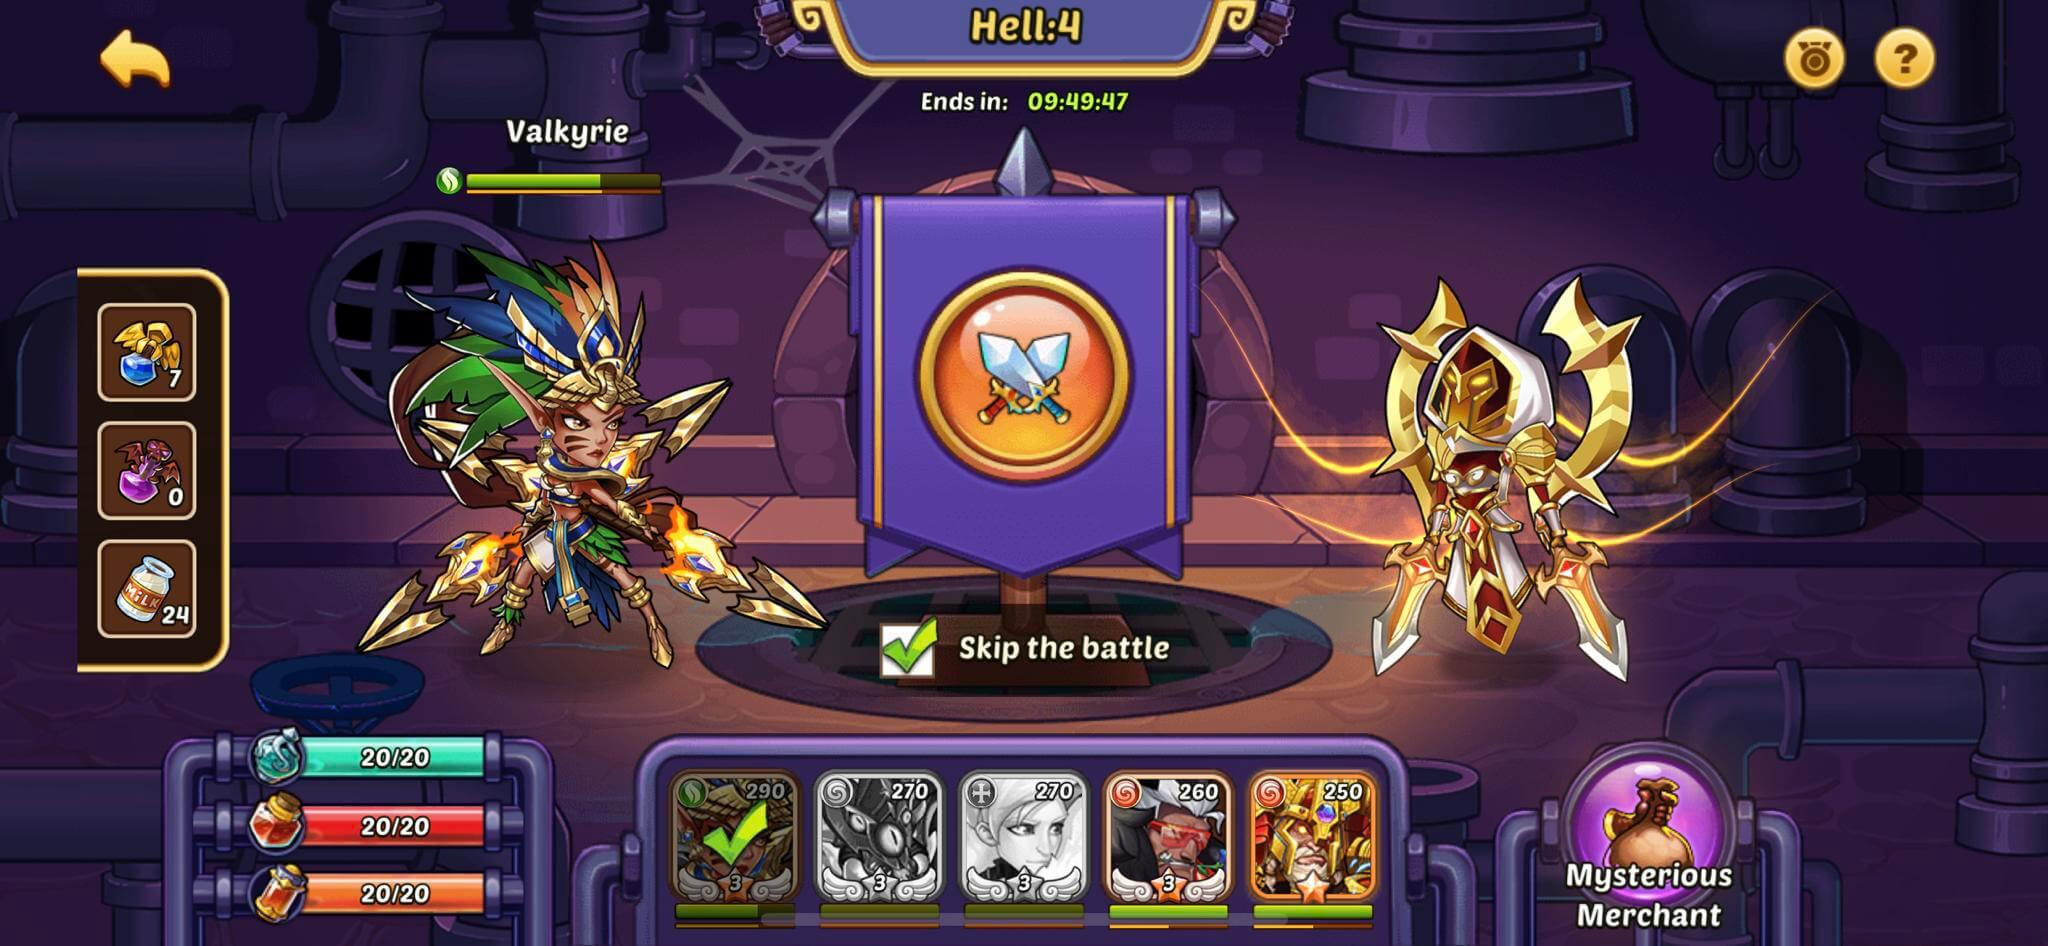 Idle Heroes Aspen Dungeon Guide - Detailed Builds and Matchups